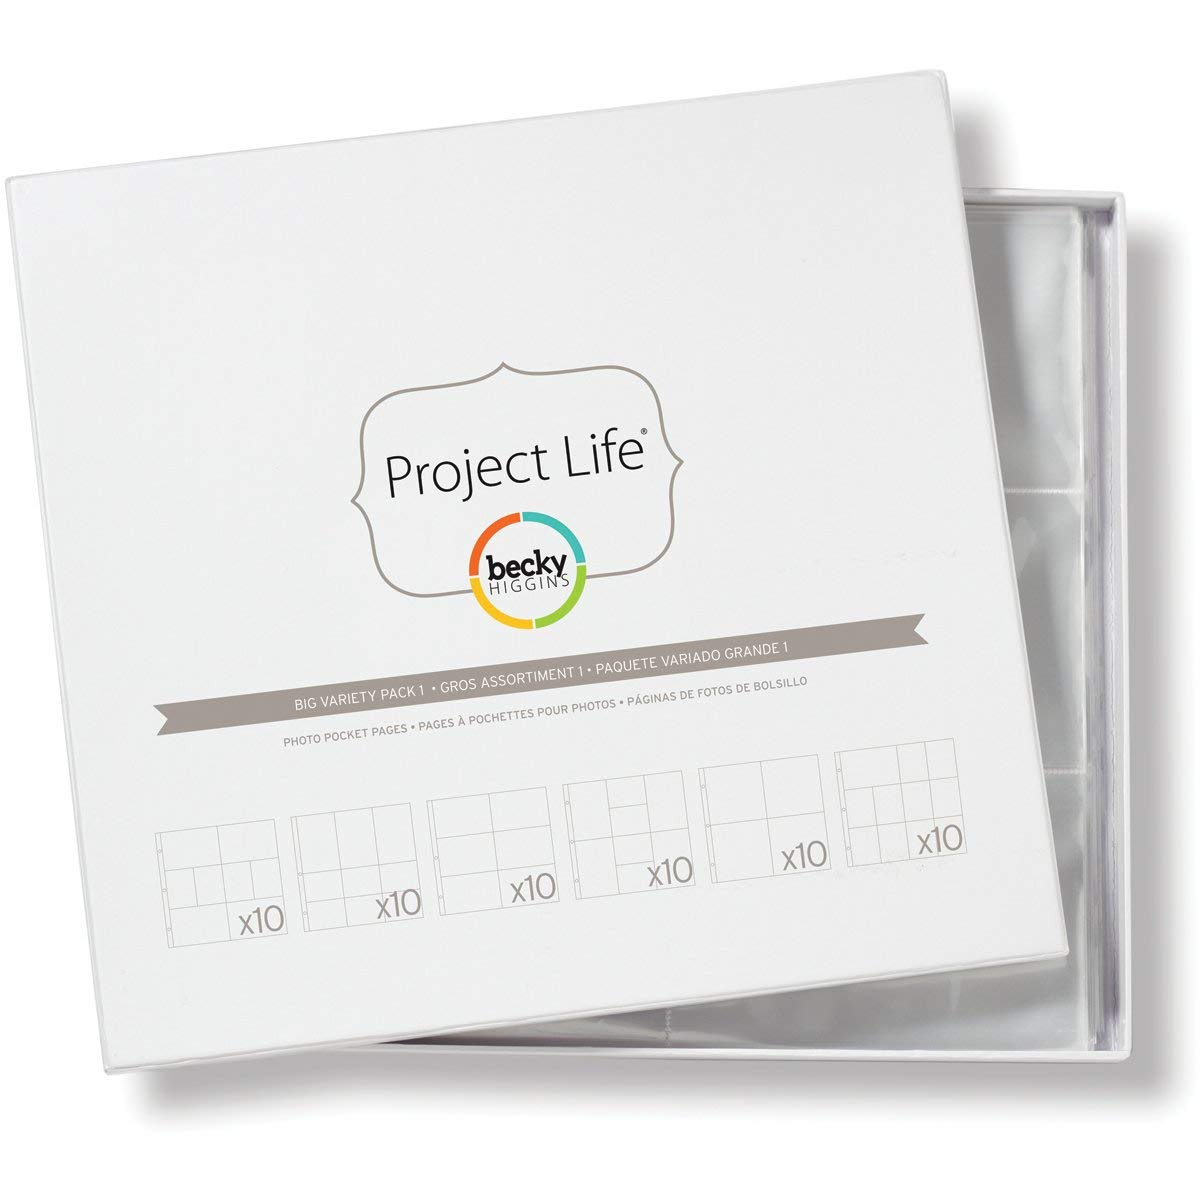 Project Life - Big Variety Pack 1 Photo Pocket Pages